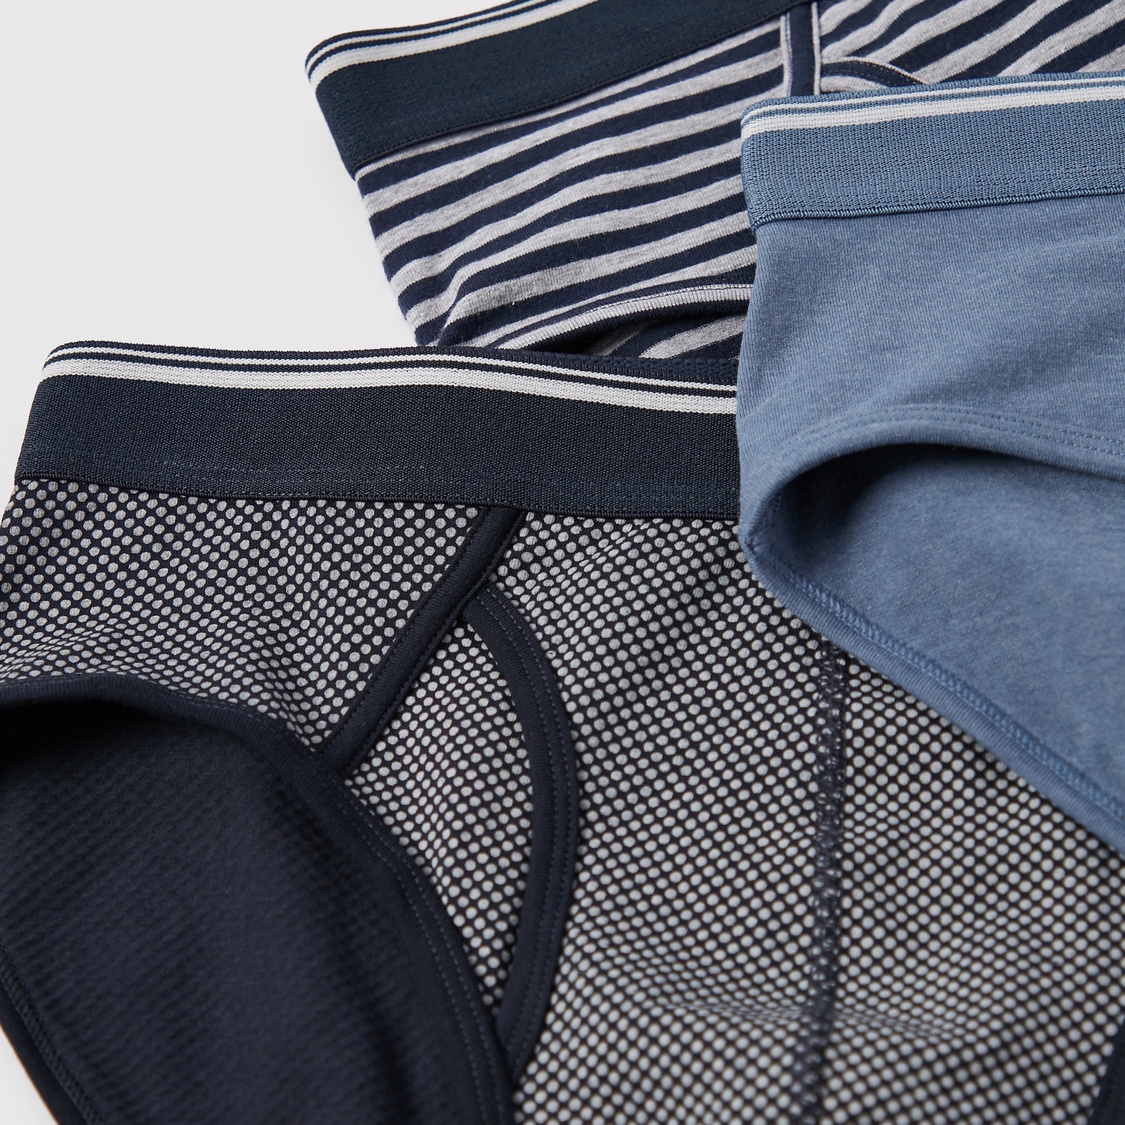 Pack of 3 - Assorted Briefs with Wide Elasticised Waistband